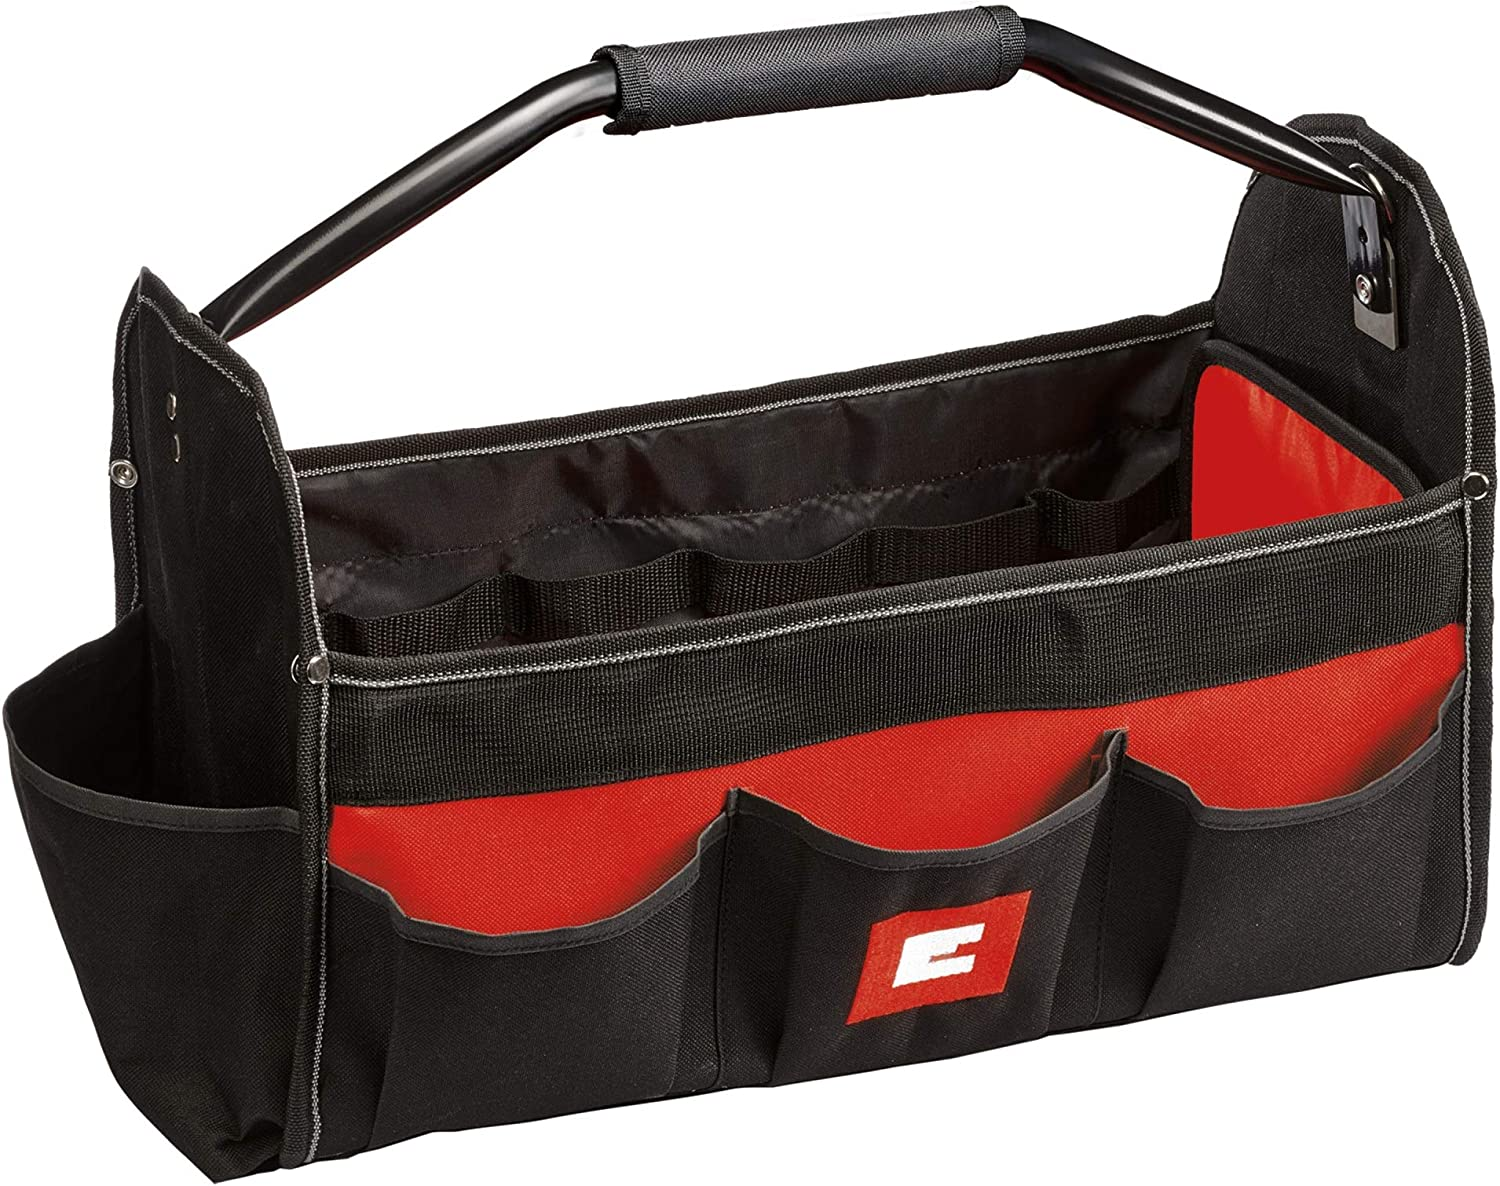 Einhell 18-Inch Open Universal Tote / Tool Bag with Carry Handle